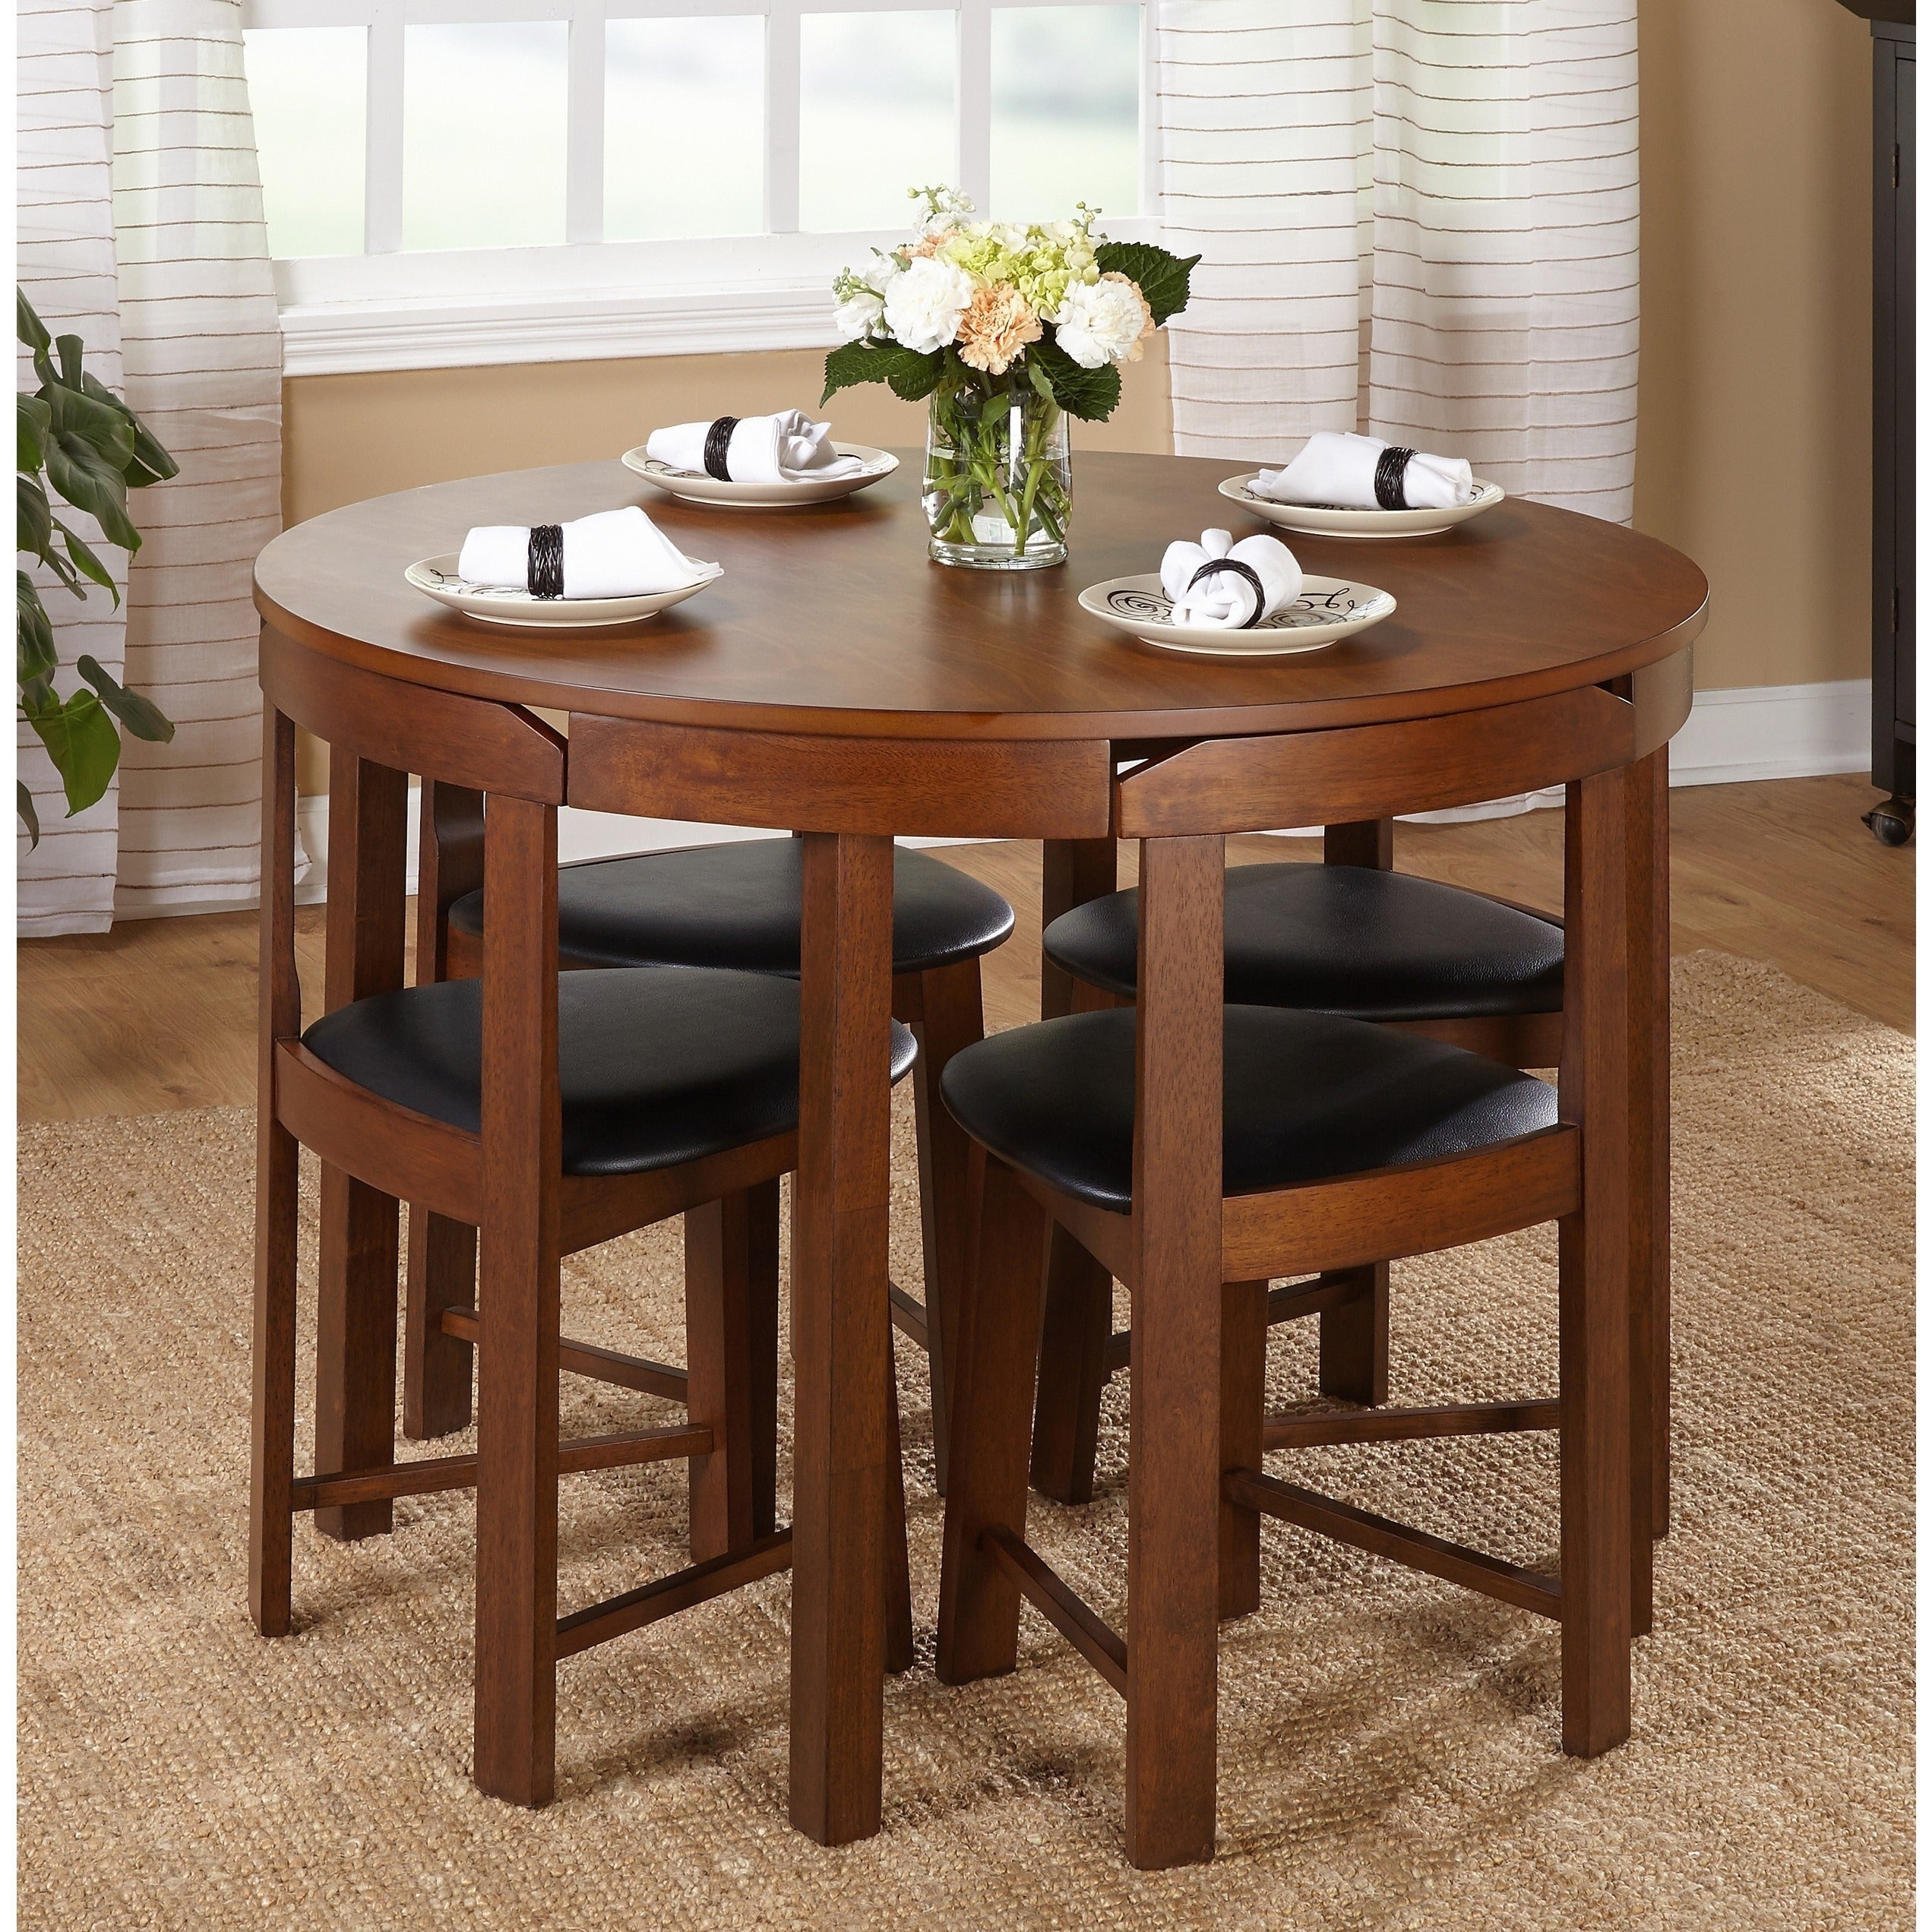 Buy Breakfast Nook Kitchen & Dining Room Sets Online At Overstock For Most Up To Date Cincinnati 3 Piece Dining Sets (Gallery 5 of 20)